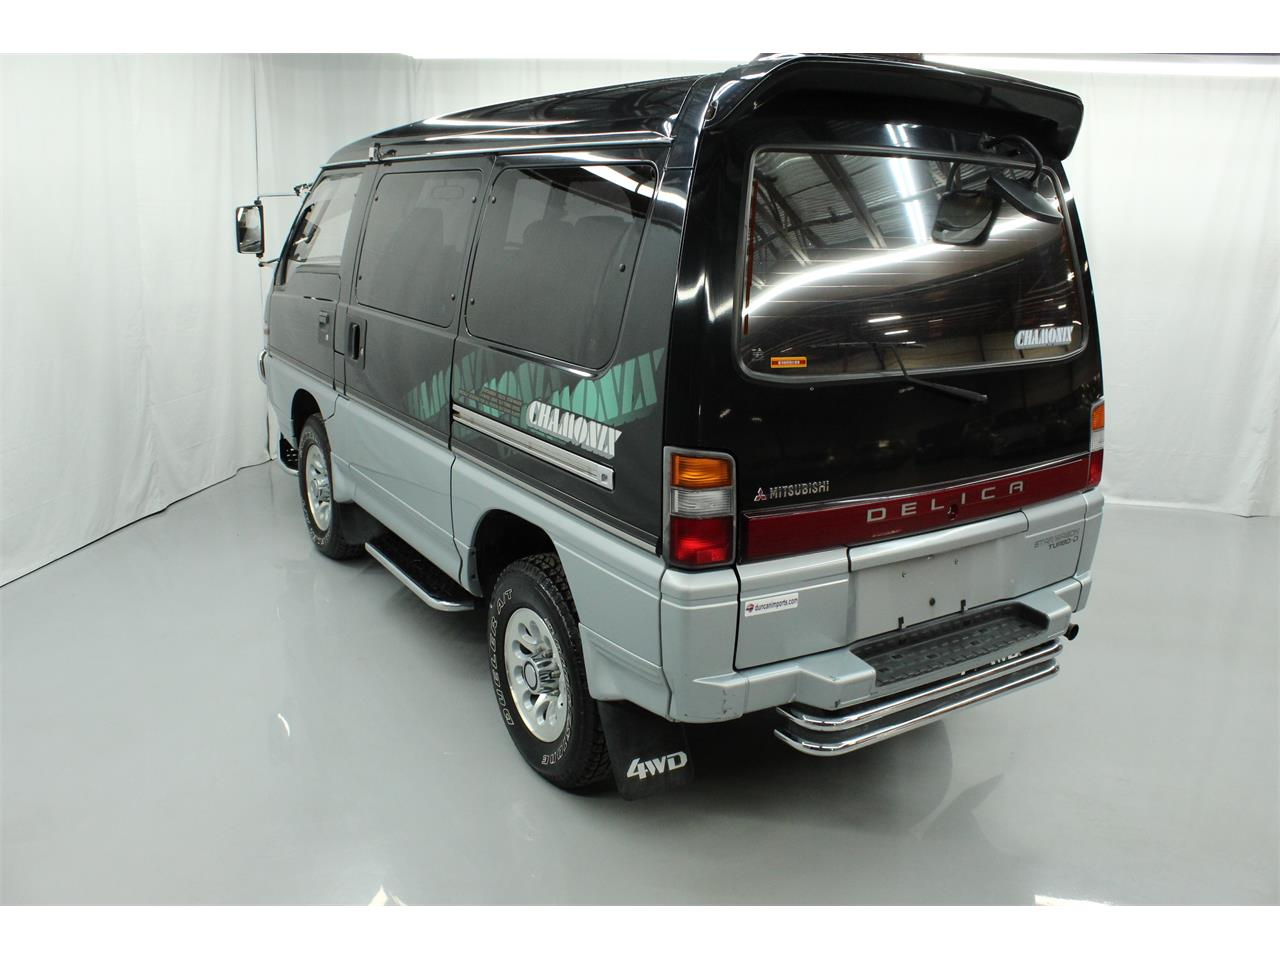 1992 Mitsubishi Delica for sale in Christiansburg, VA – photo 7